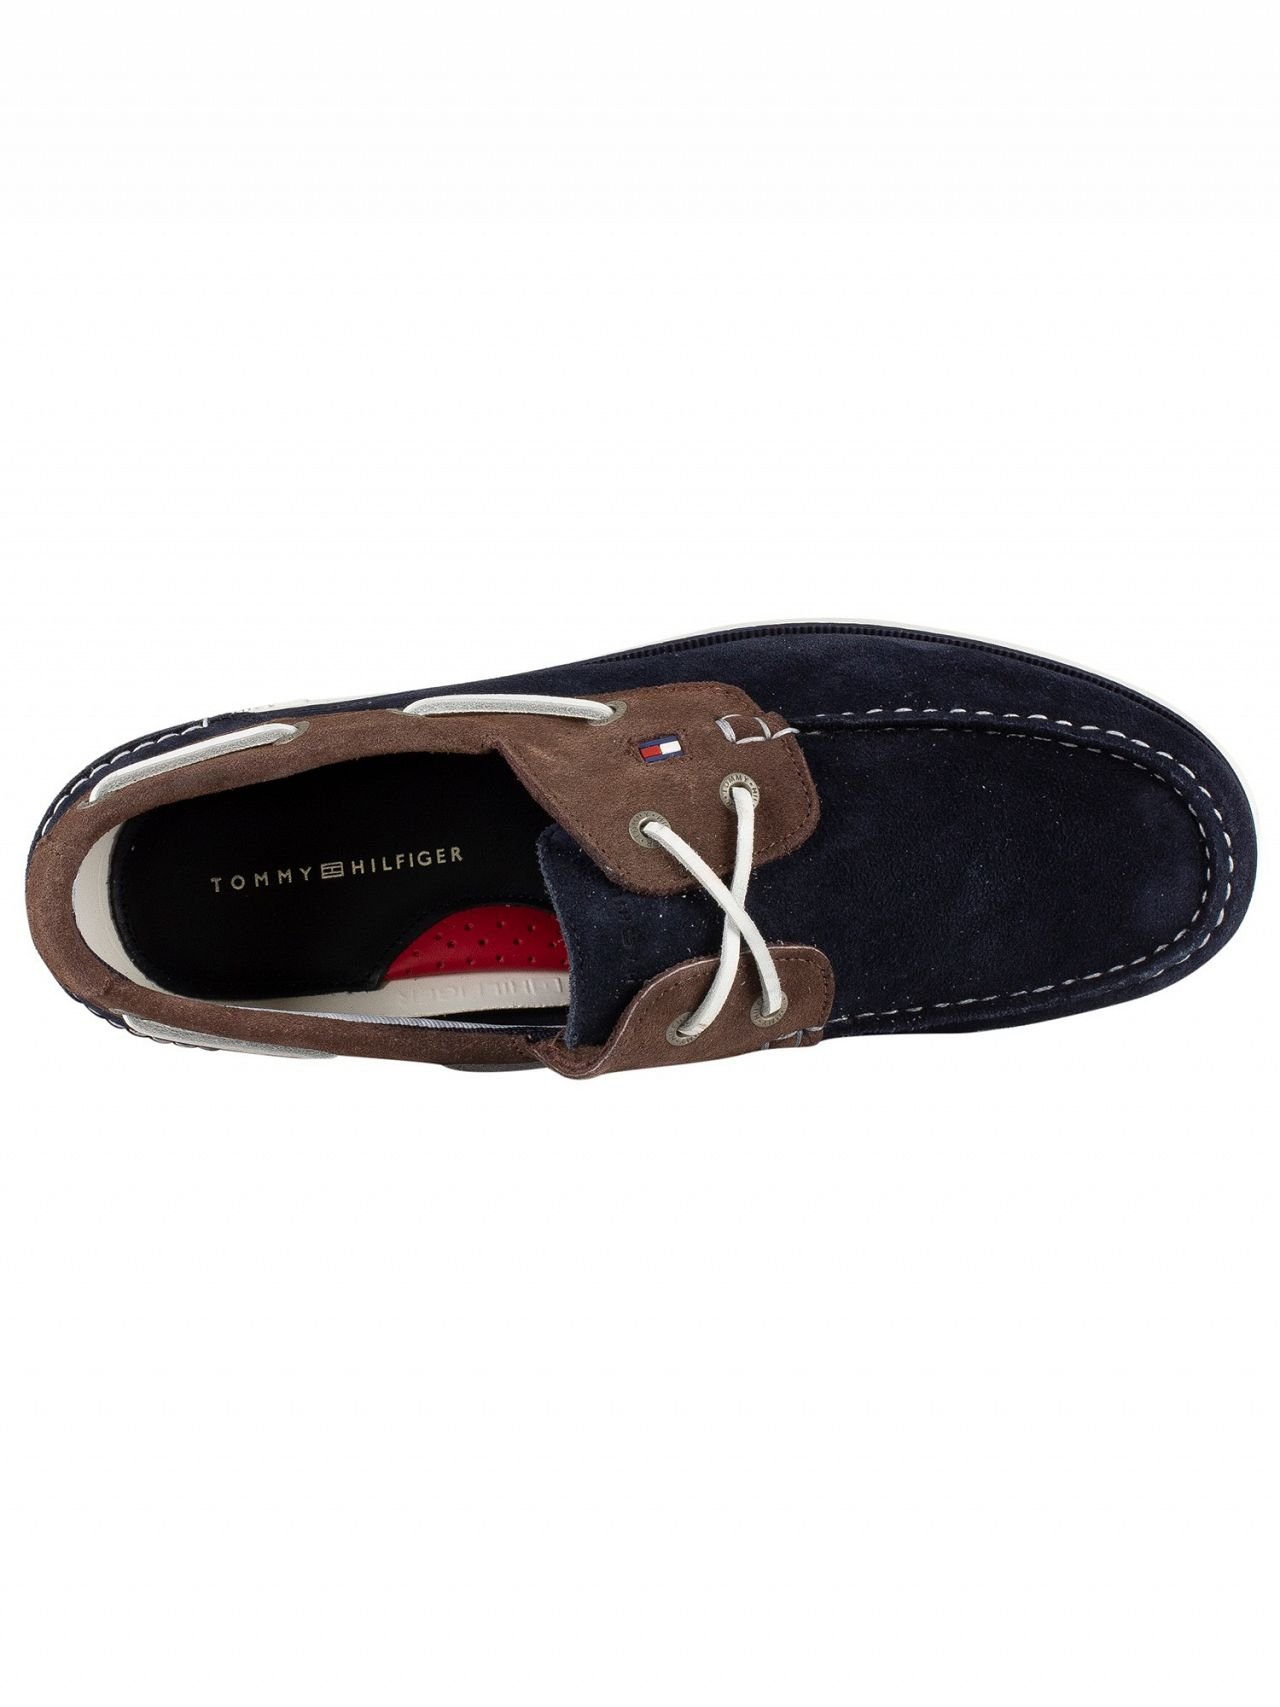 e55187d803ae Tommy Hilfiger Midnight Coffee Bean Classic Suede Boat Shoes